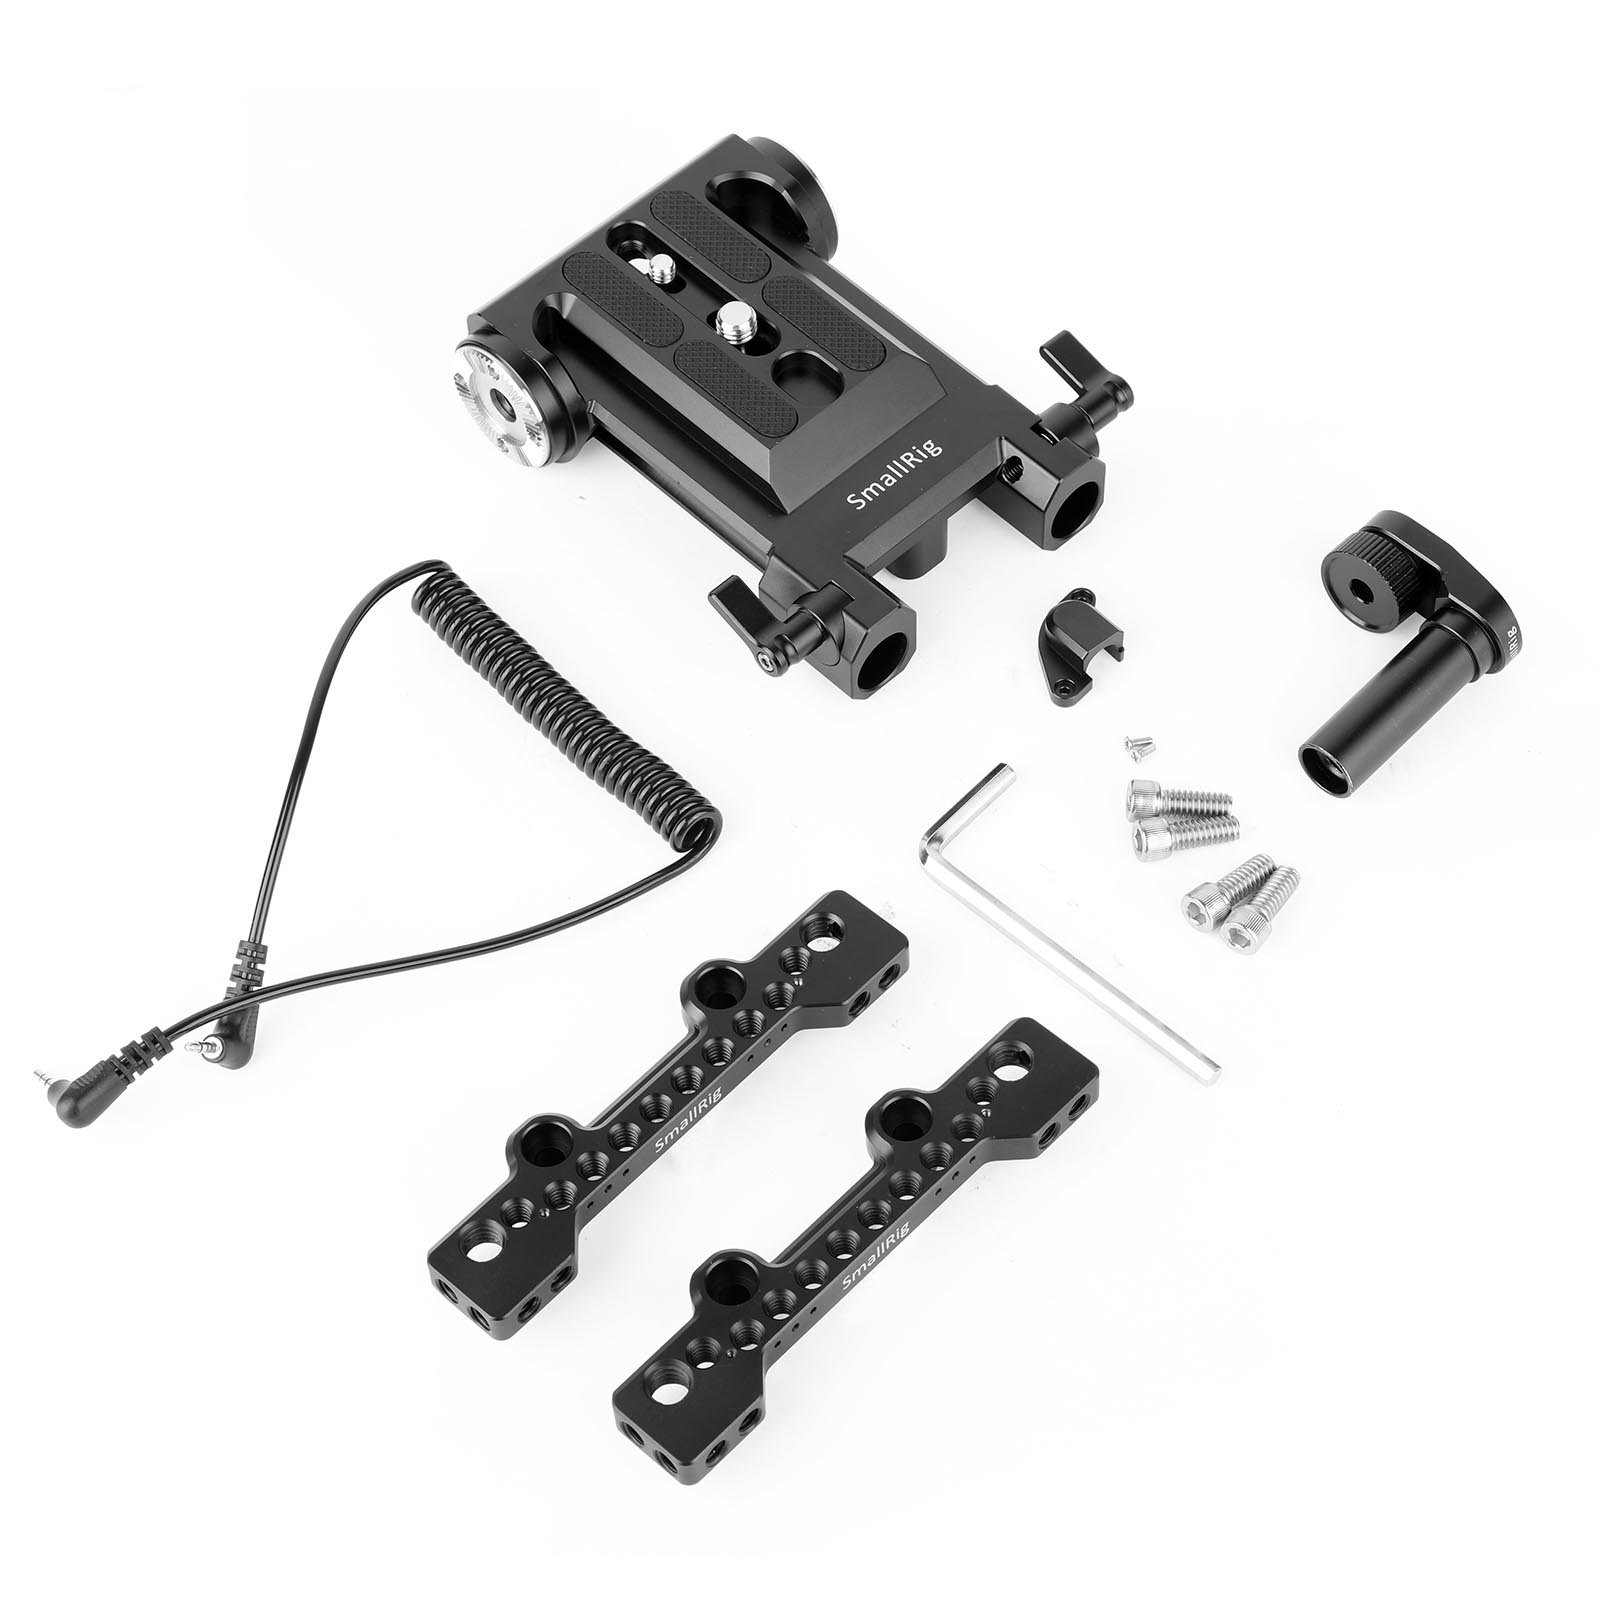 SMALLRIG Camere Accessories Rig for Sony PXW-FS5, with Top Plate, Base Plate, Cable, Clamp Adapter - 1861